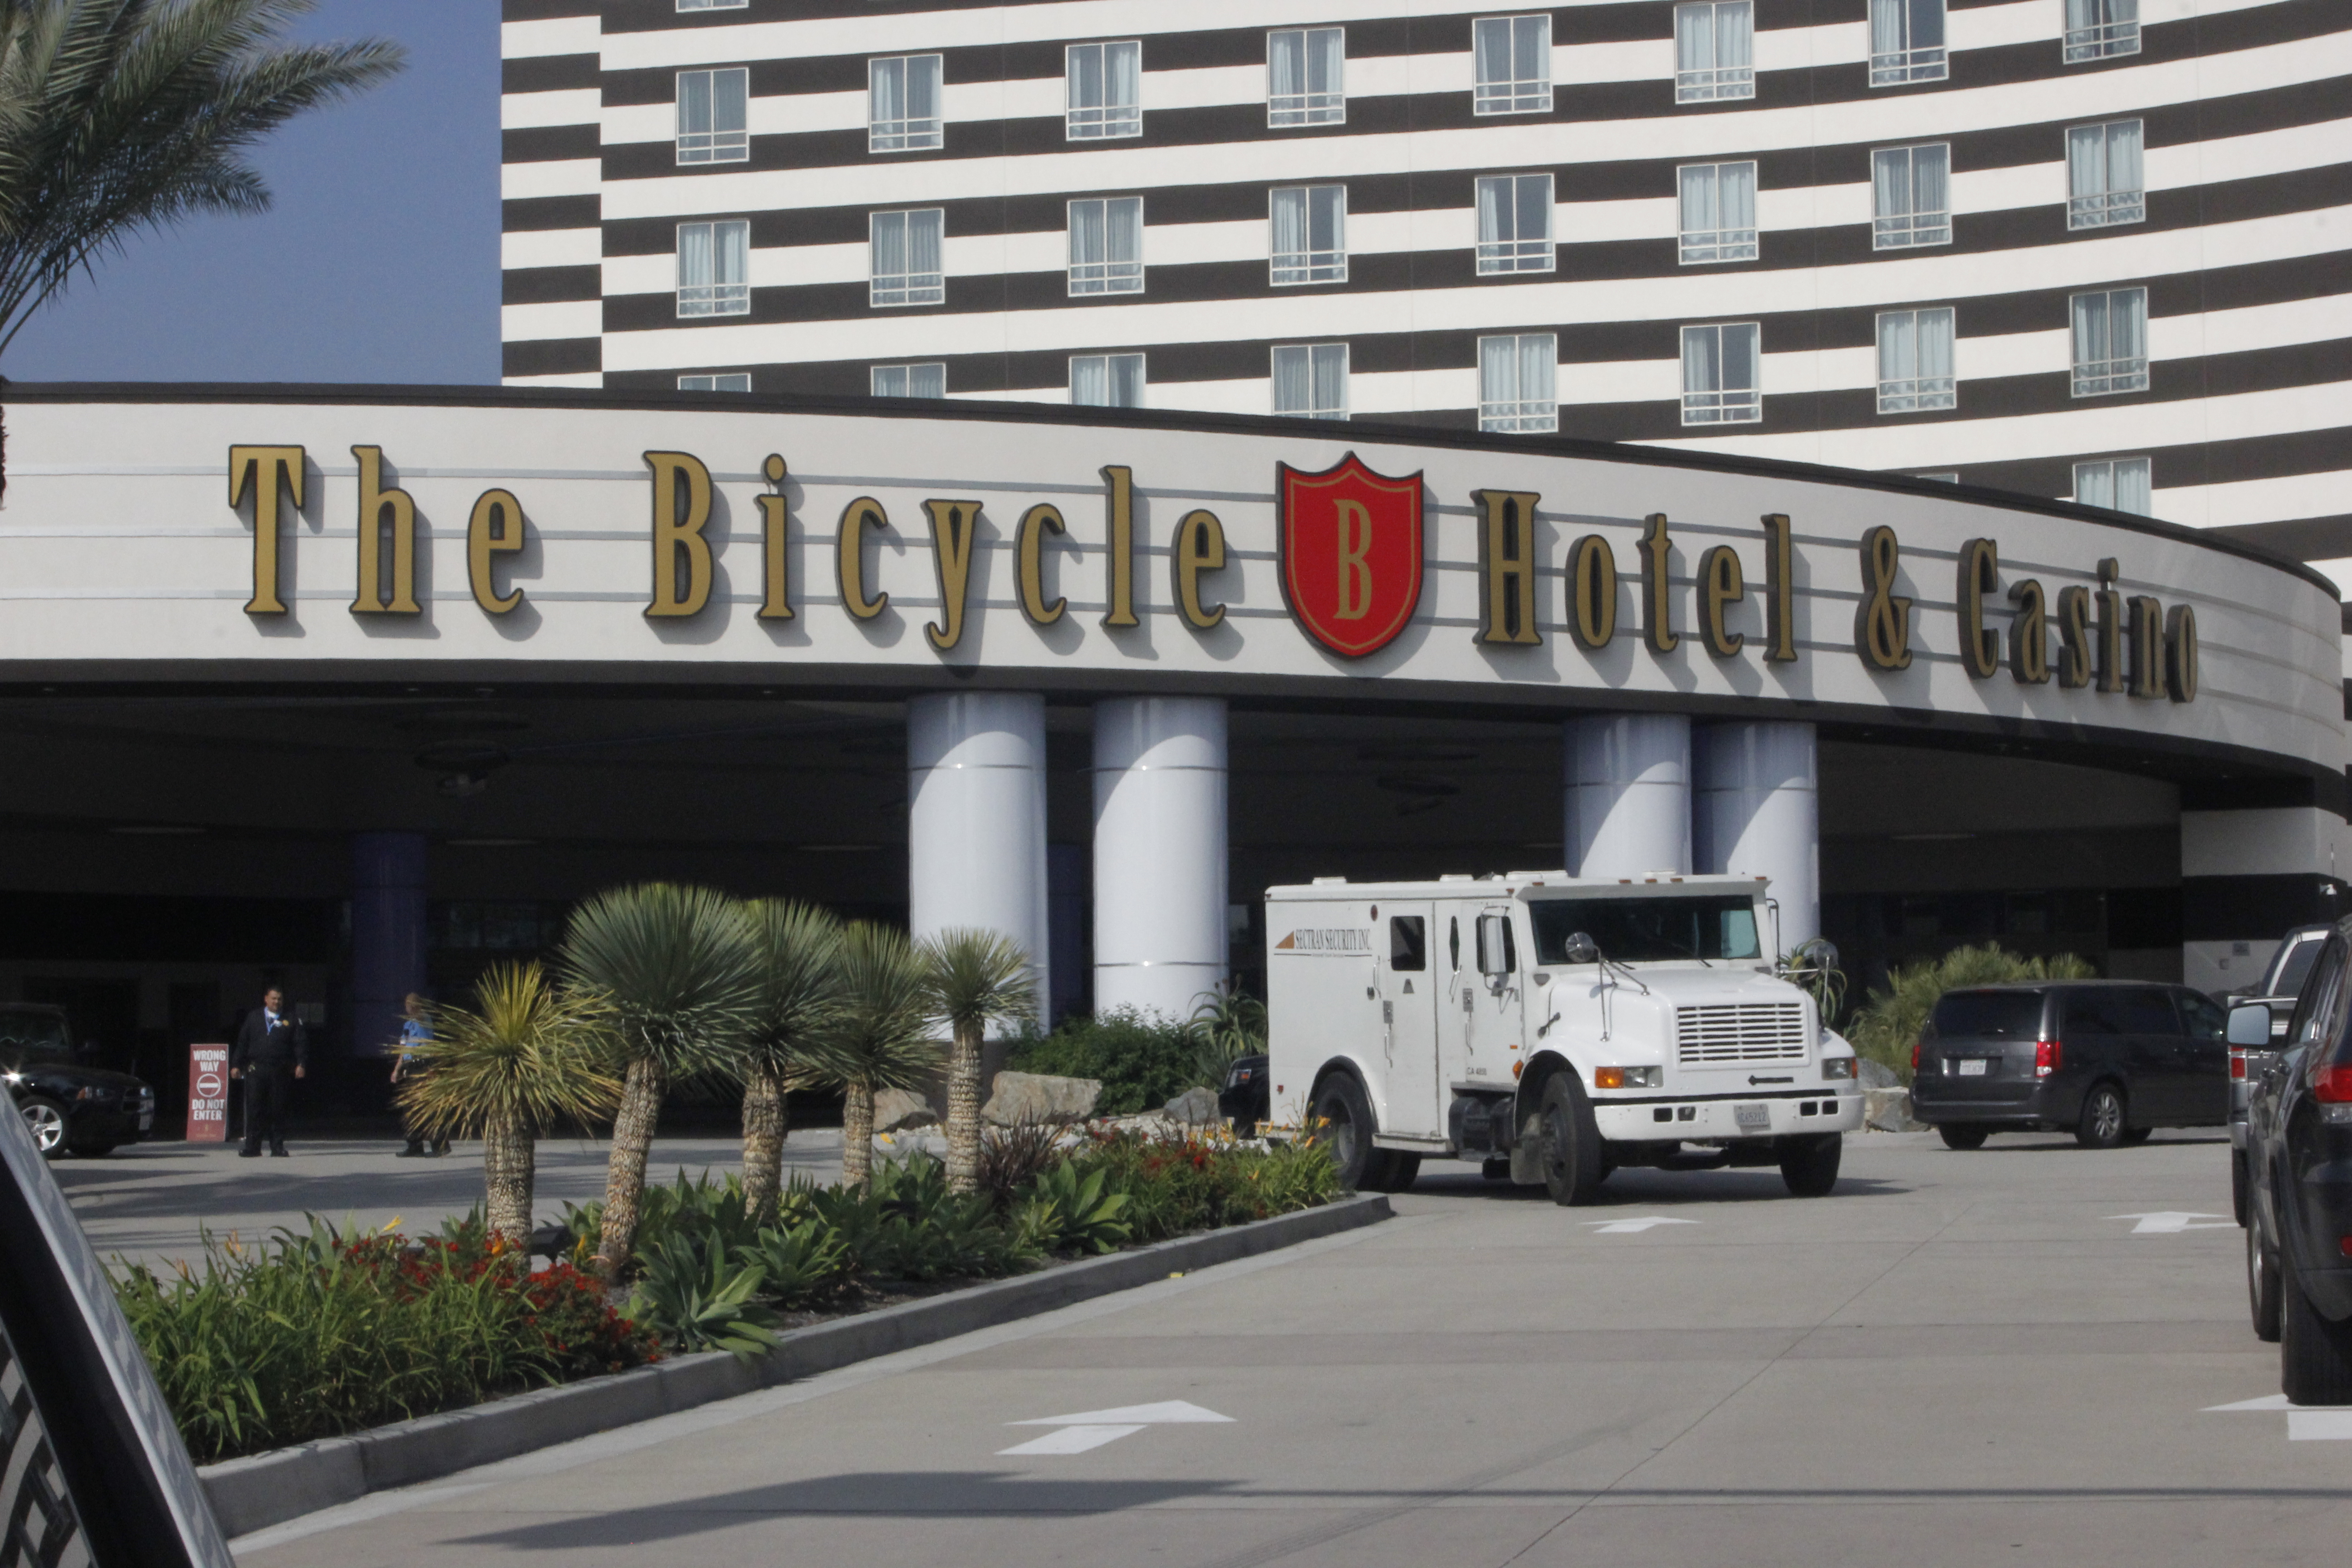 Feds Raid Bell Gardens Bicycle Casino Eastern Group Publications